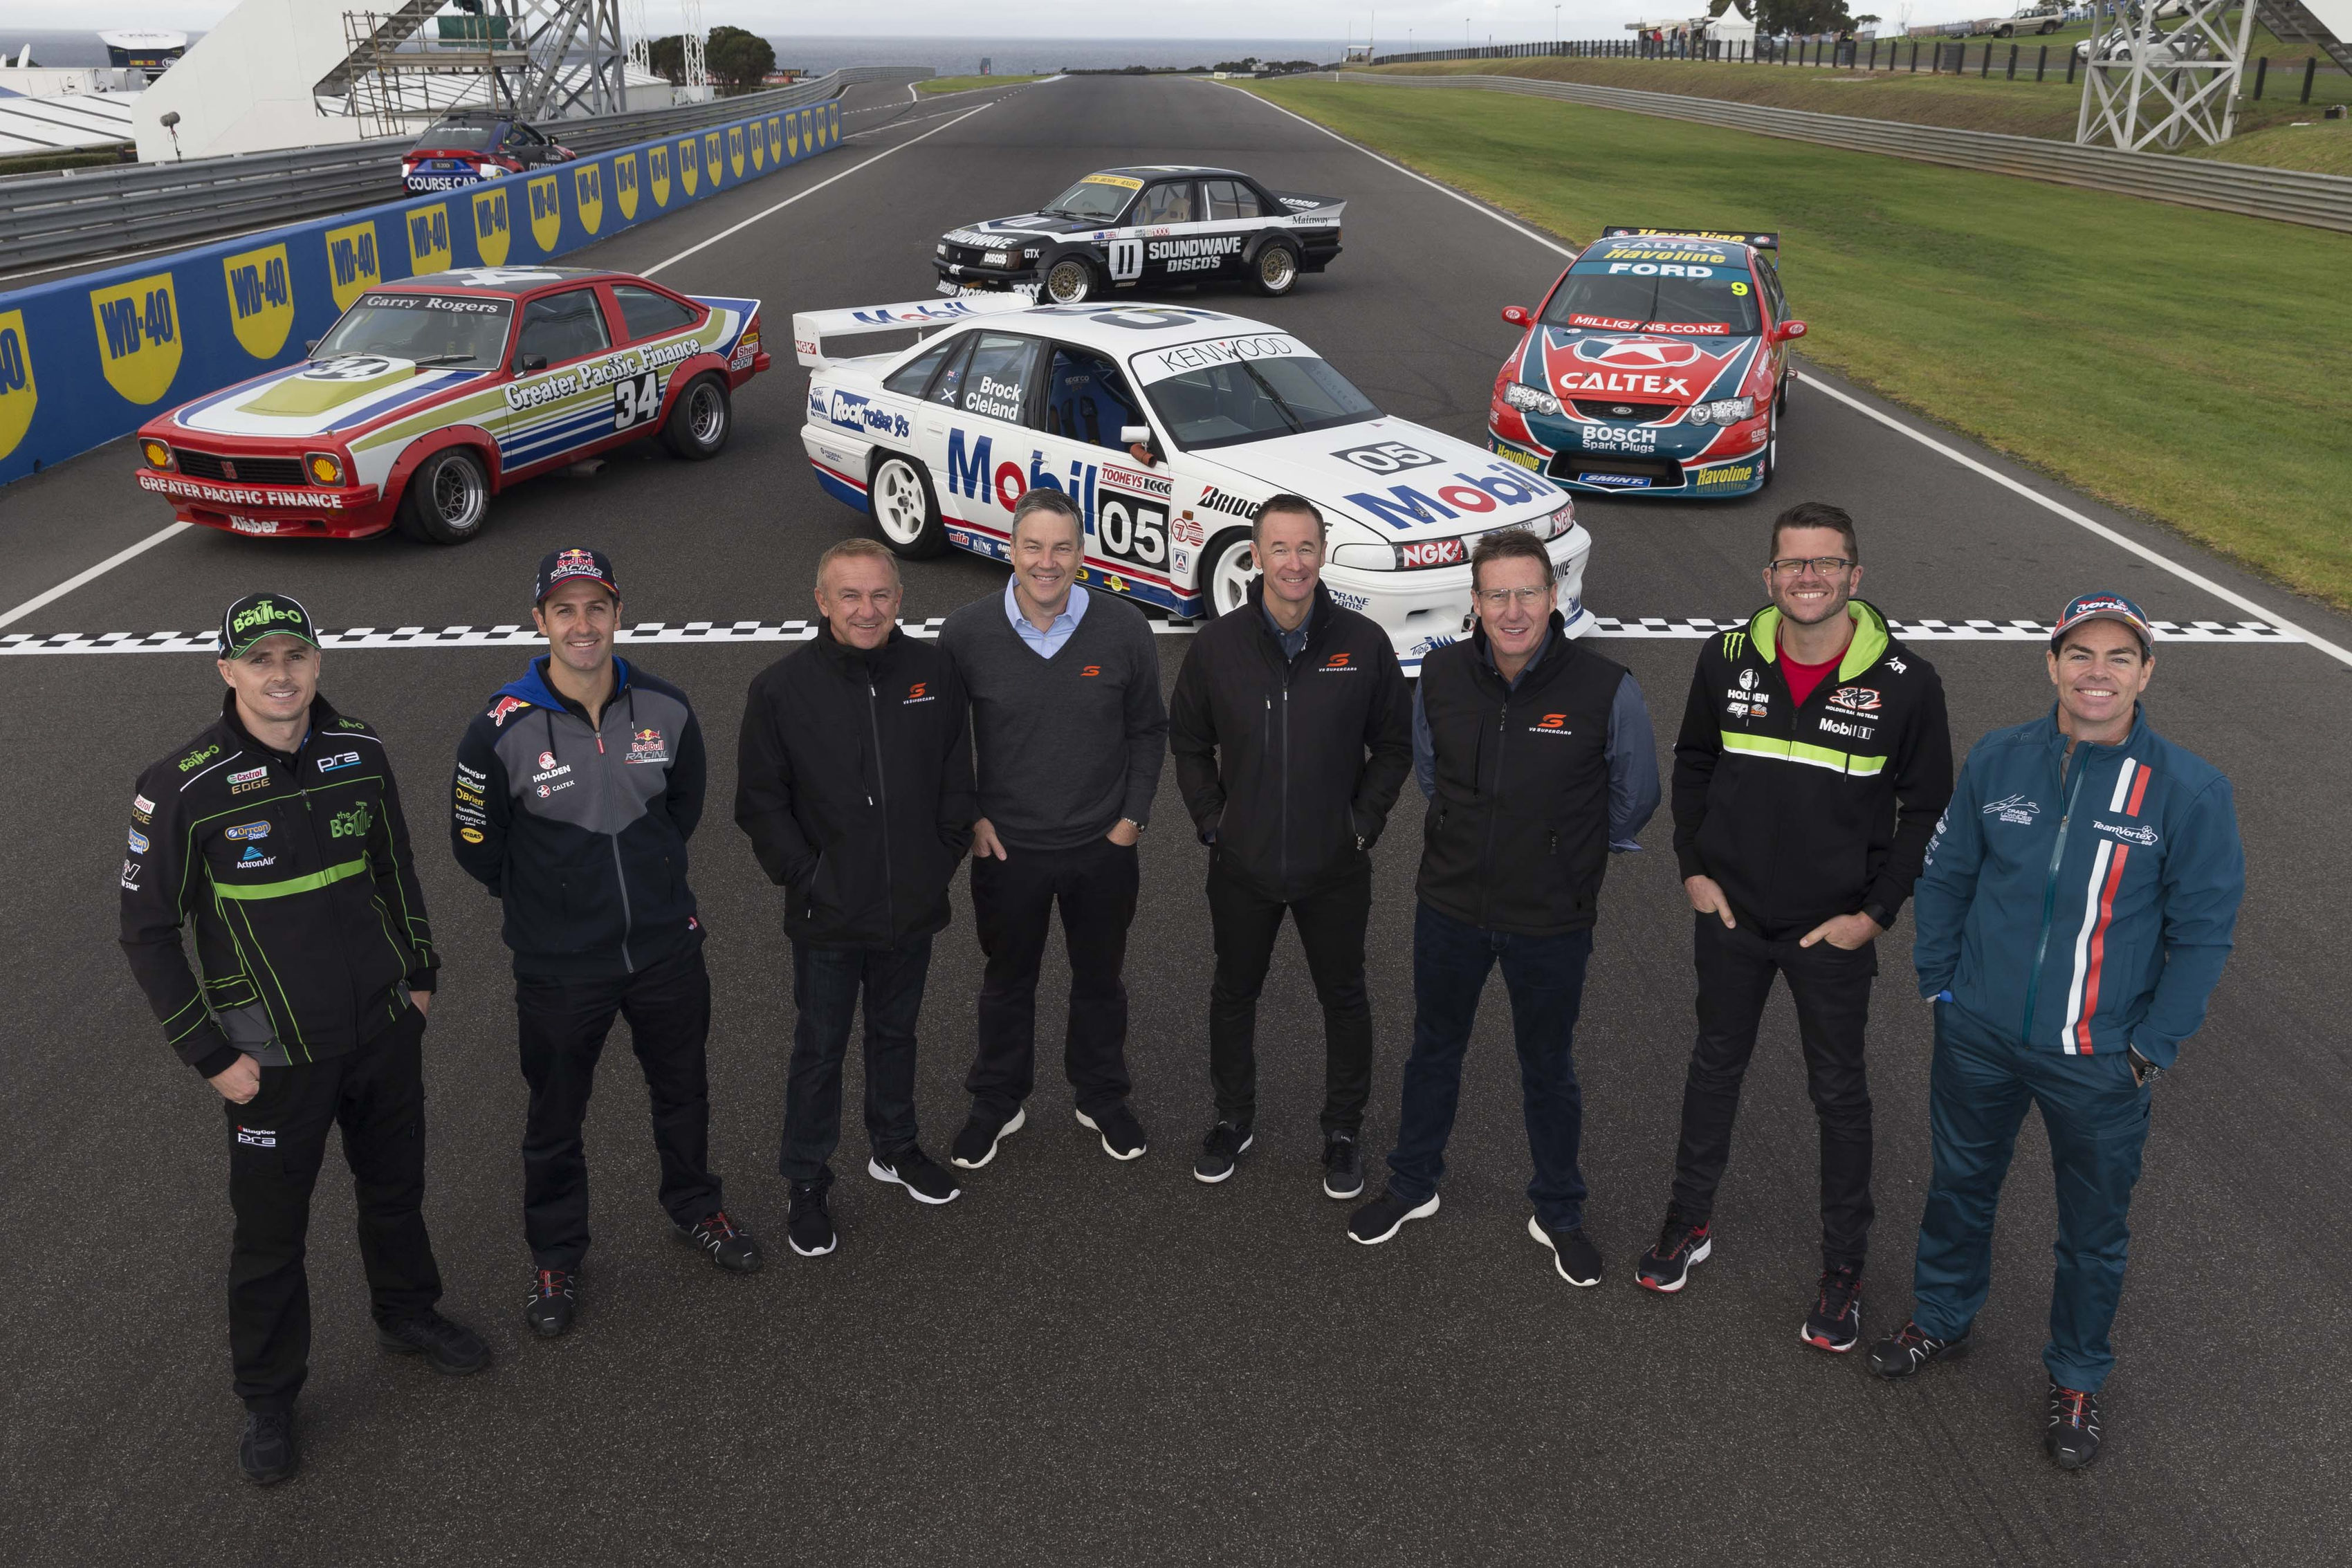 V8 Supercars drivers past and present gather on the grid to mark the 500th Championship Event during the WD-40 Phillip Island SuperSprint, in Phillip Island, Australia, April 16, 2016. drivers left to right. Mark Winterbottom, Jamie Whincup, Russell Ingall, Neil Crompton, Greg Murphy, Mark Skaife, Garth Tander and Craig Lowndes